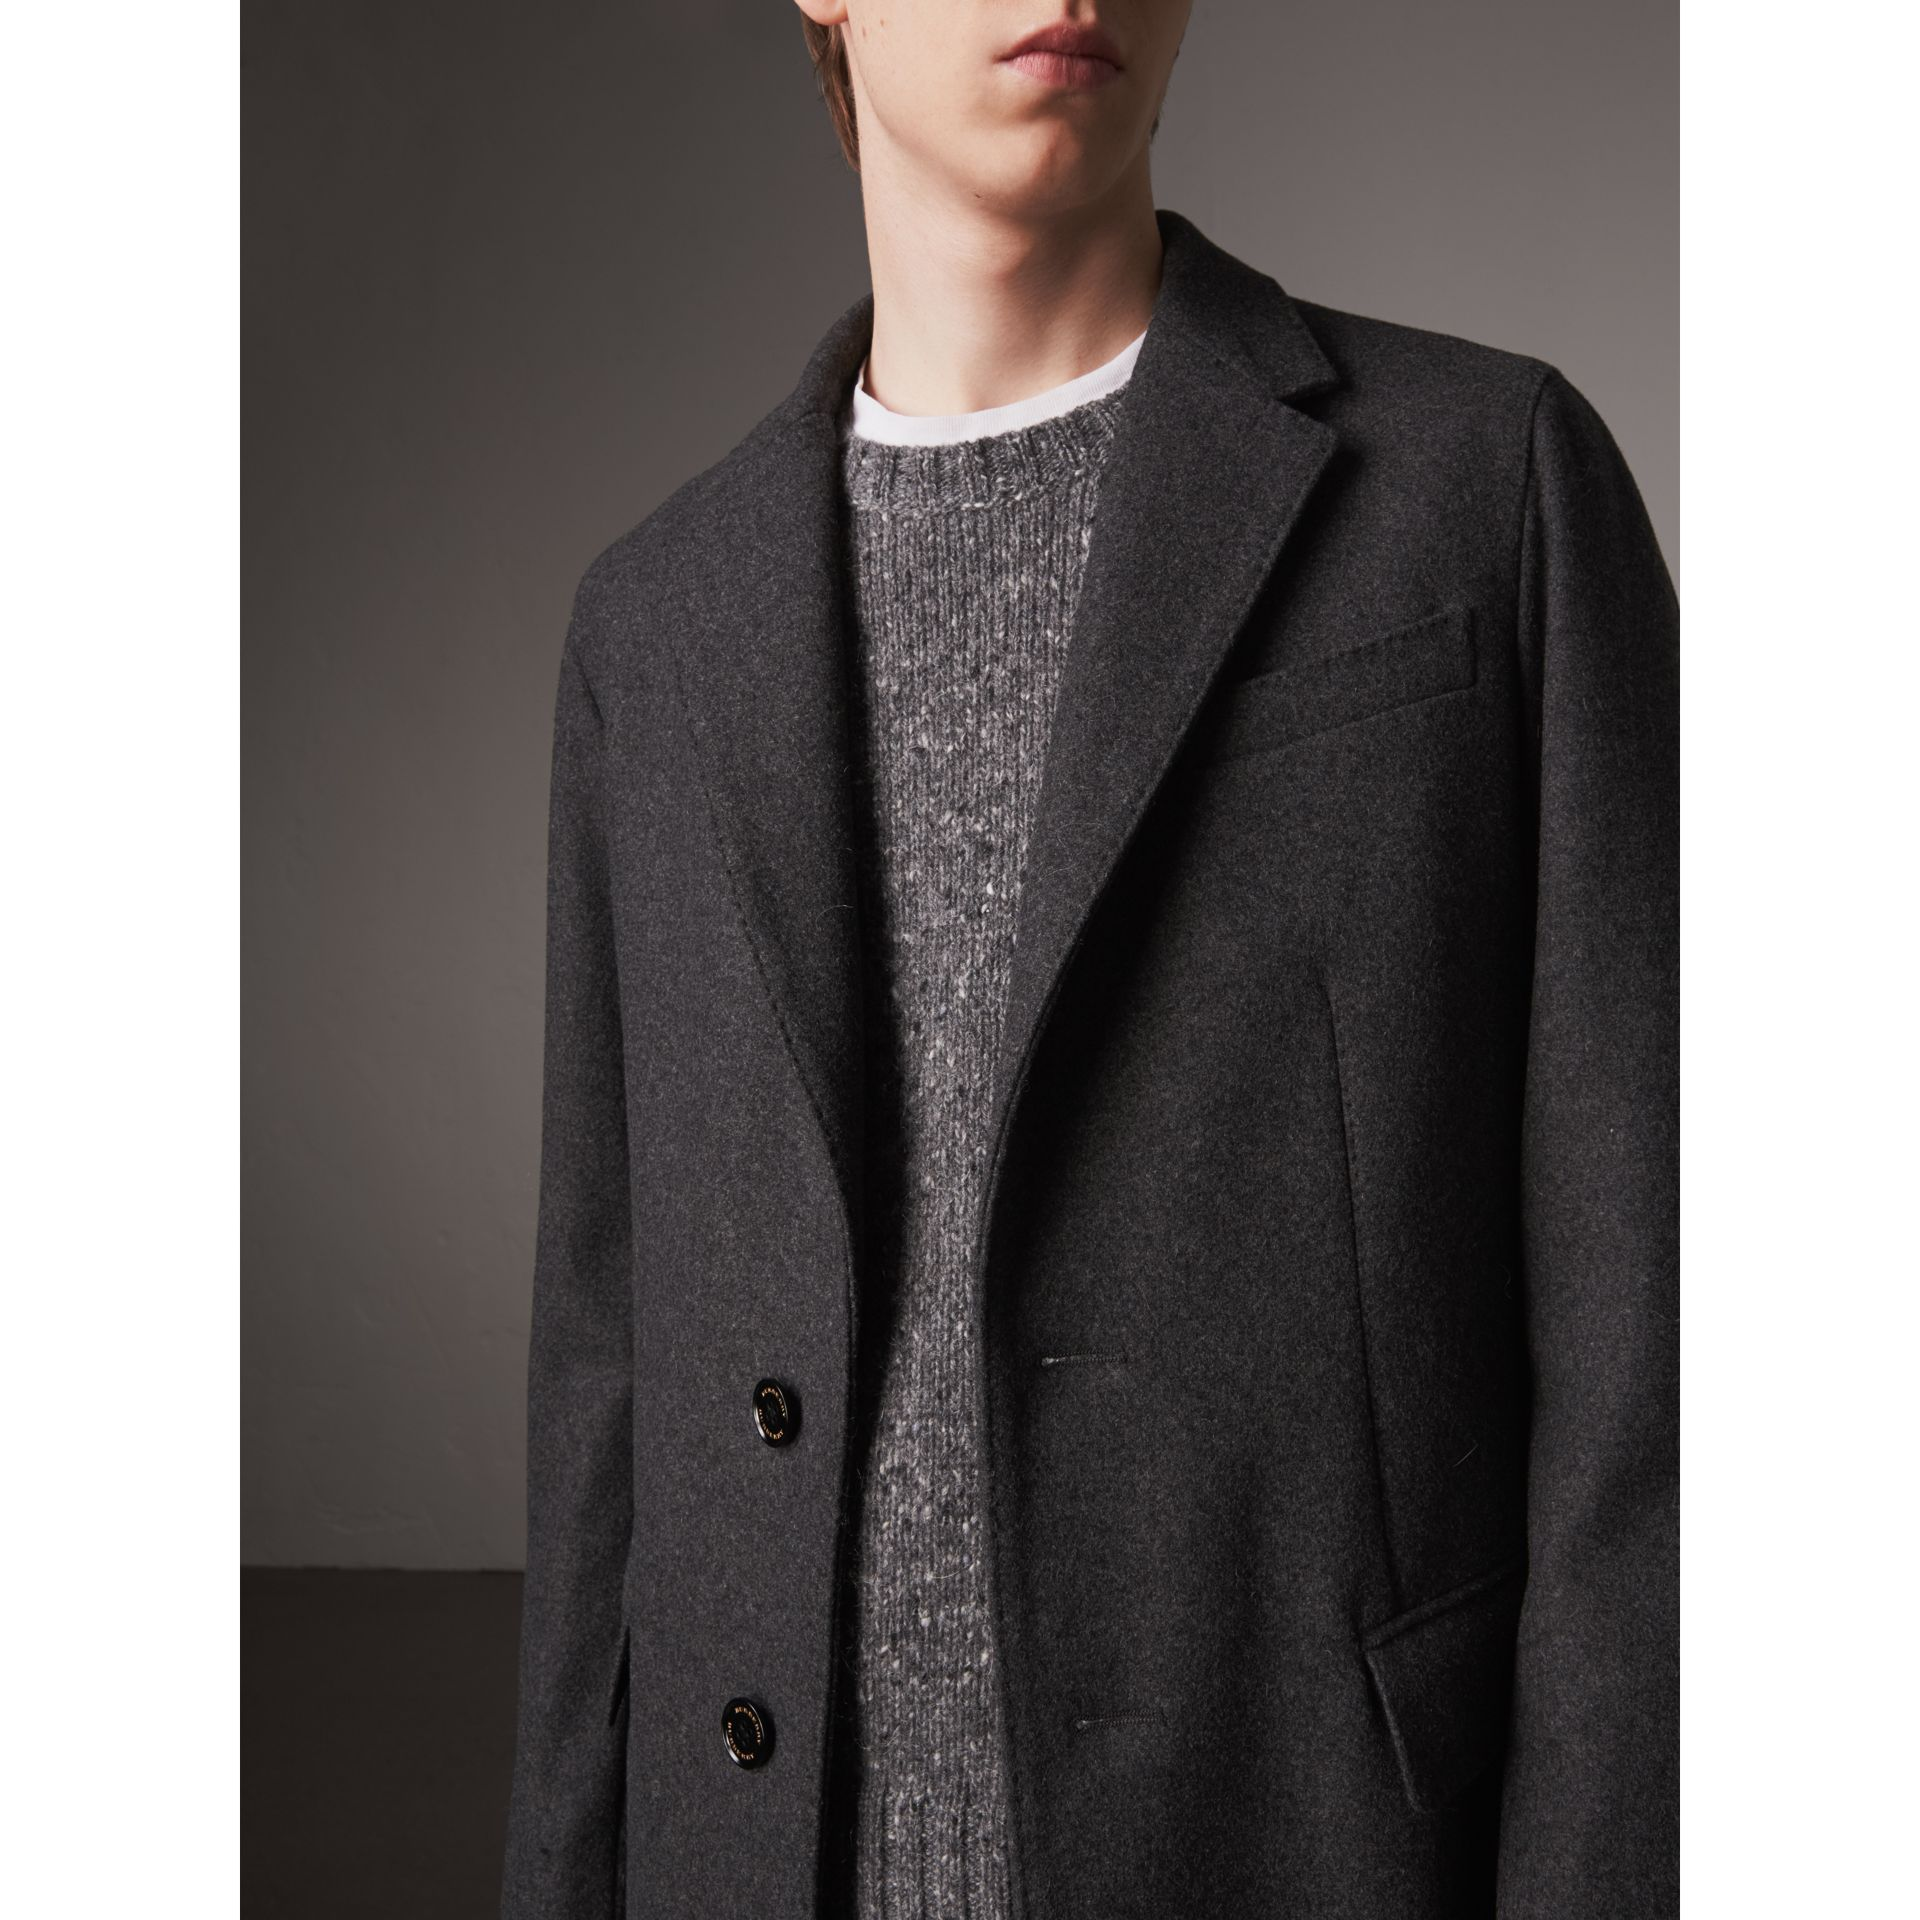 Melange Wool Blend Coat in Dark Grey - Men | Burberry Canada - gallery image 1